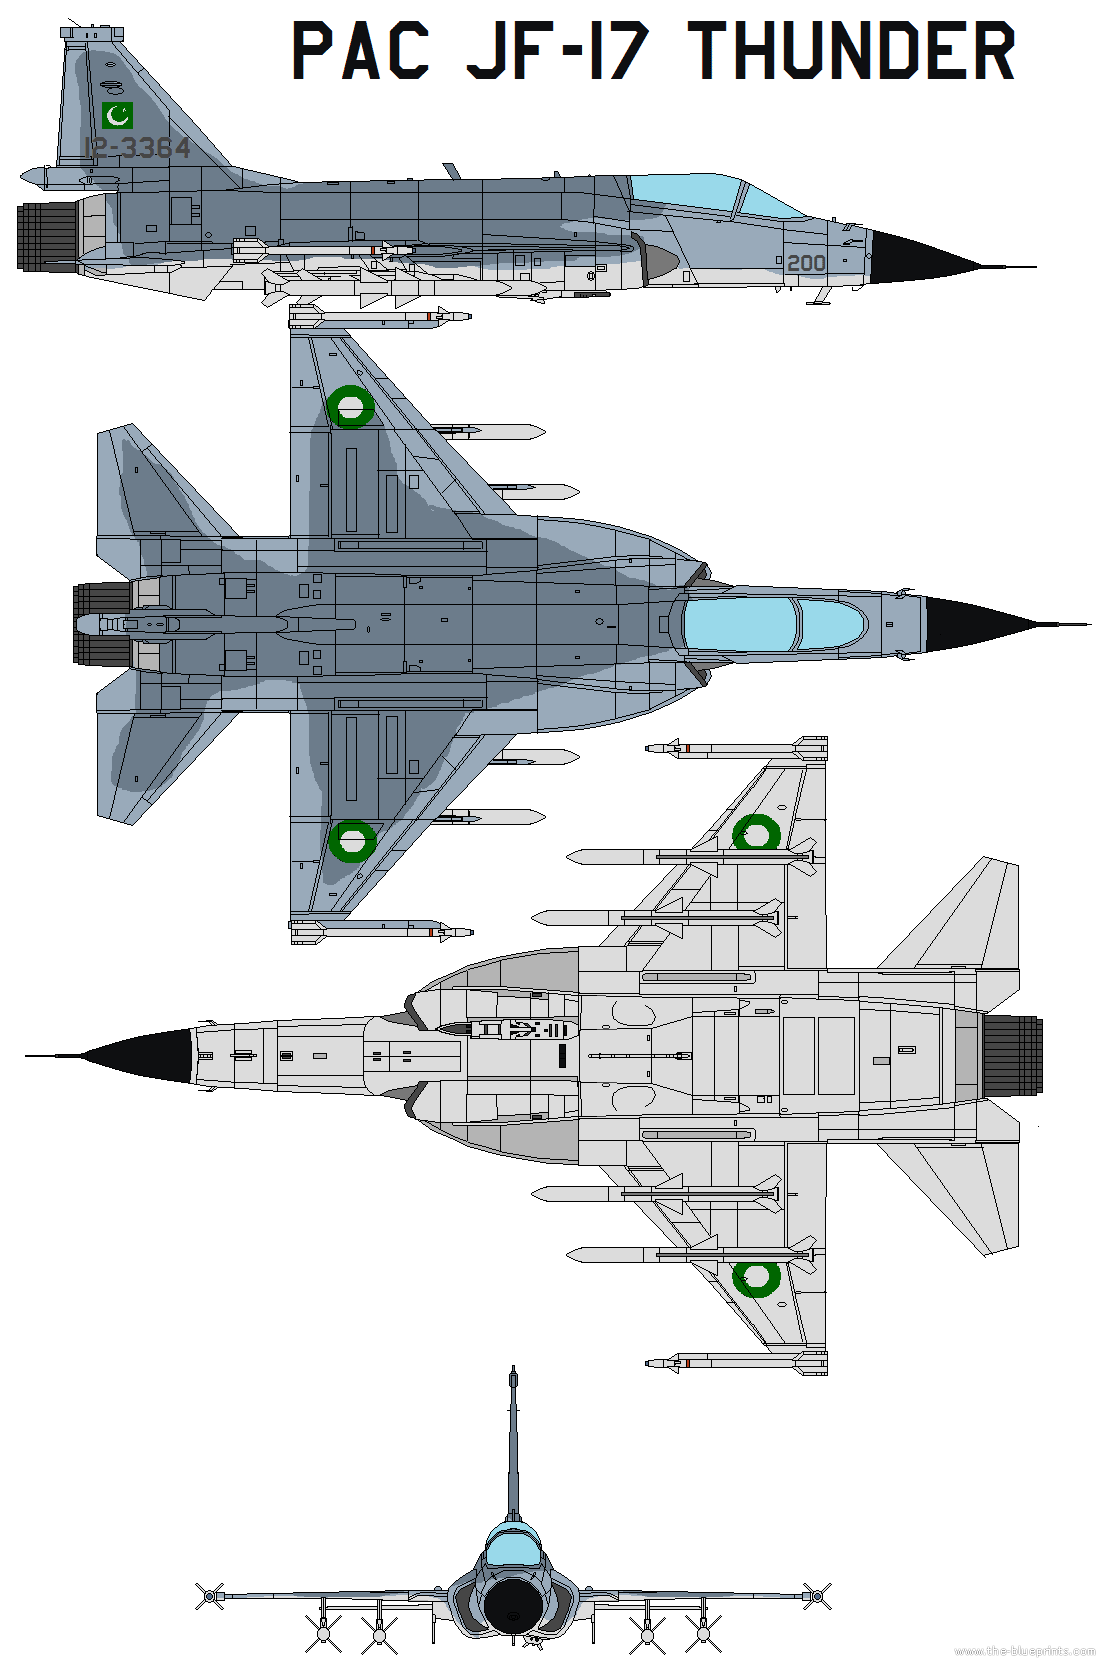 The blueprints blueprints modern airplanes modern op pac jf 17 thunder malvernweather Image collections